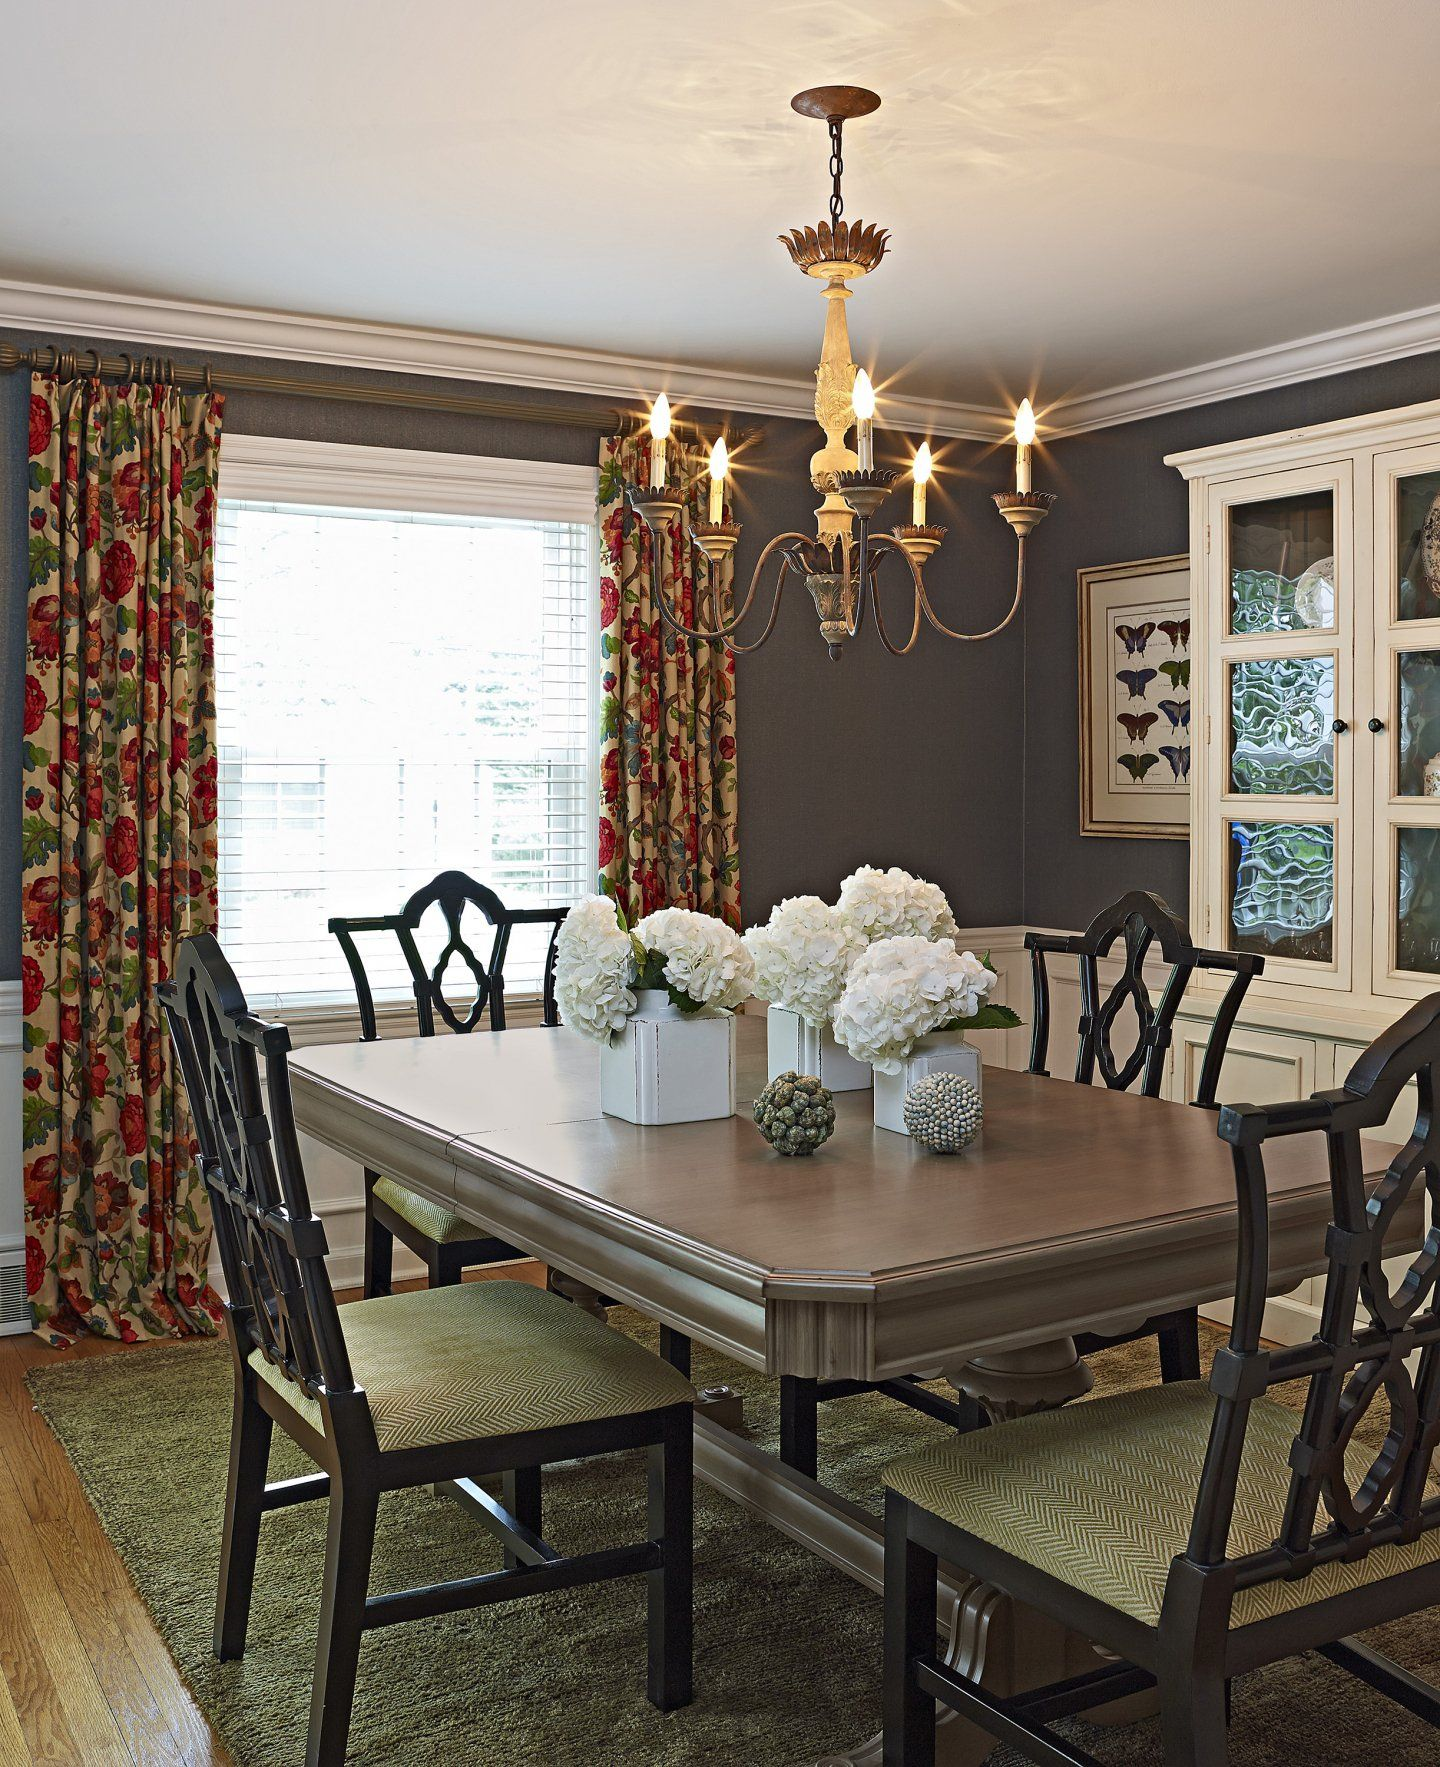 Bold Colors And Design Choices Transform A 1950s Colonial Revival Patterned CurtainsBold ColorsCandelabraIn StyleColonialRoom DecorChandeliersDining Room